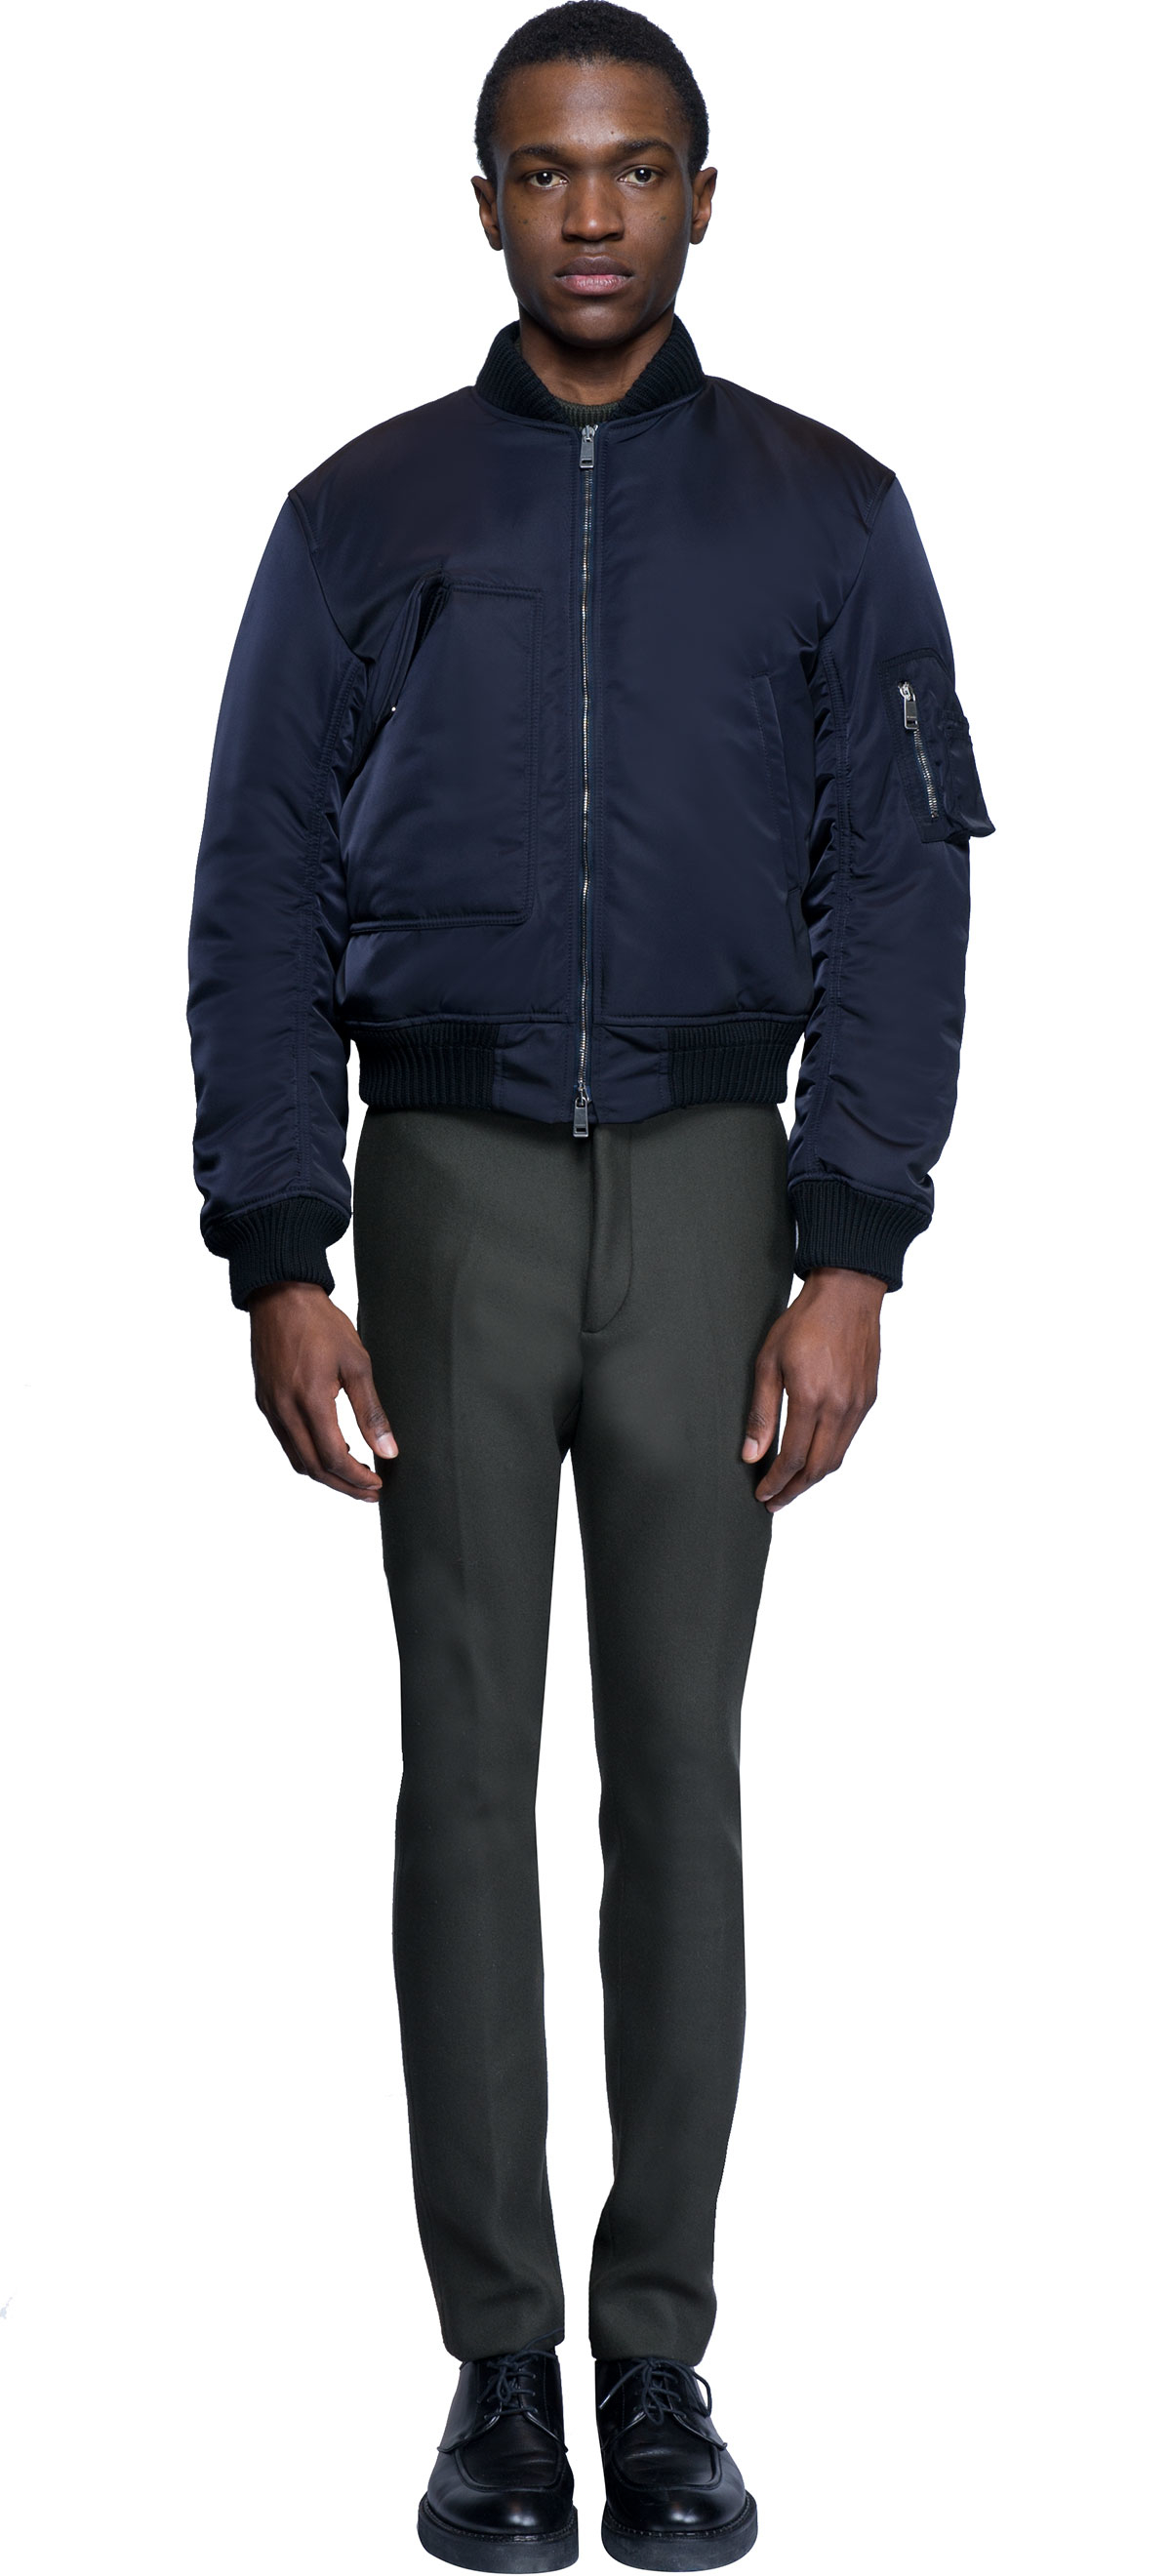 lyst jil sander bomber jacket in blue for men. Black Bedroom Furniture Sets. Home Design Ideas